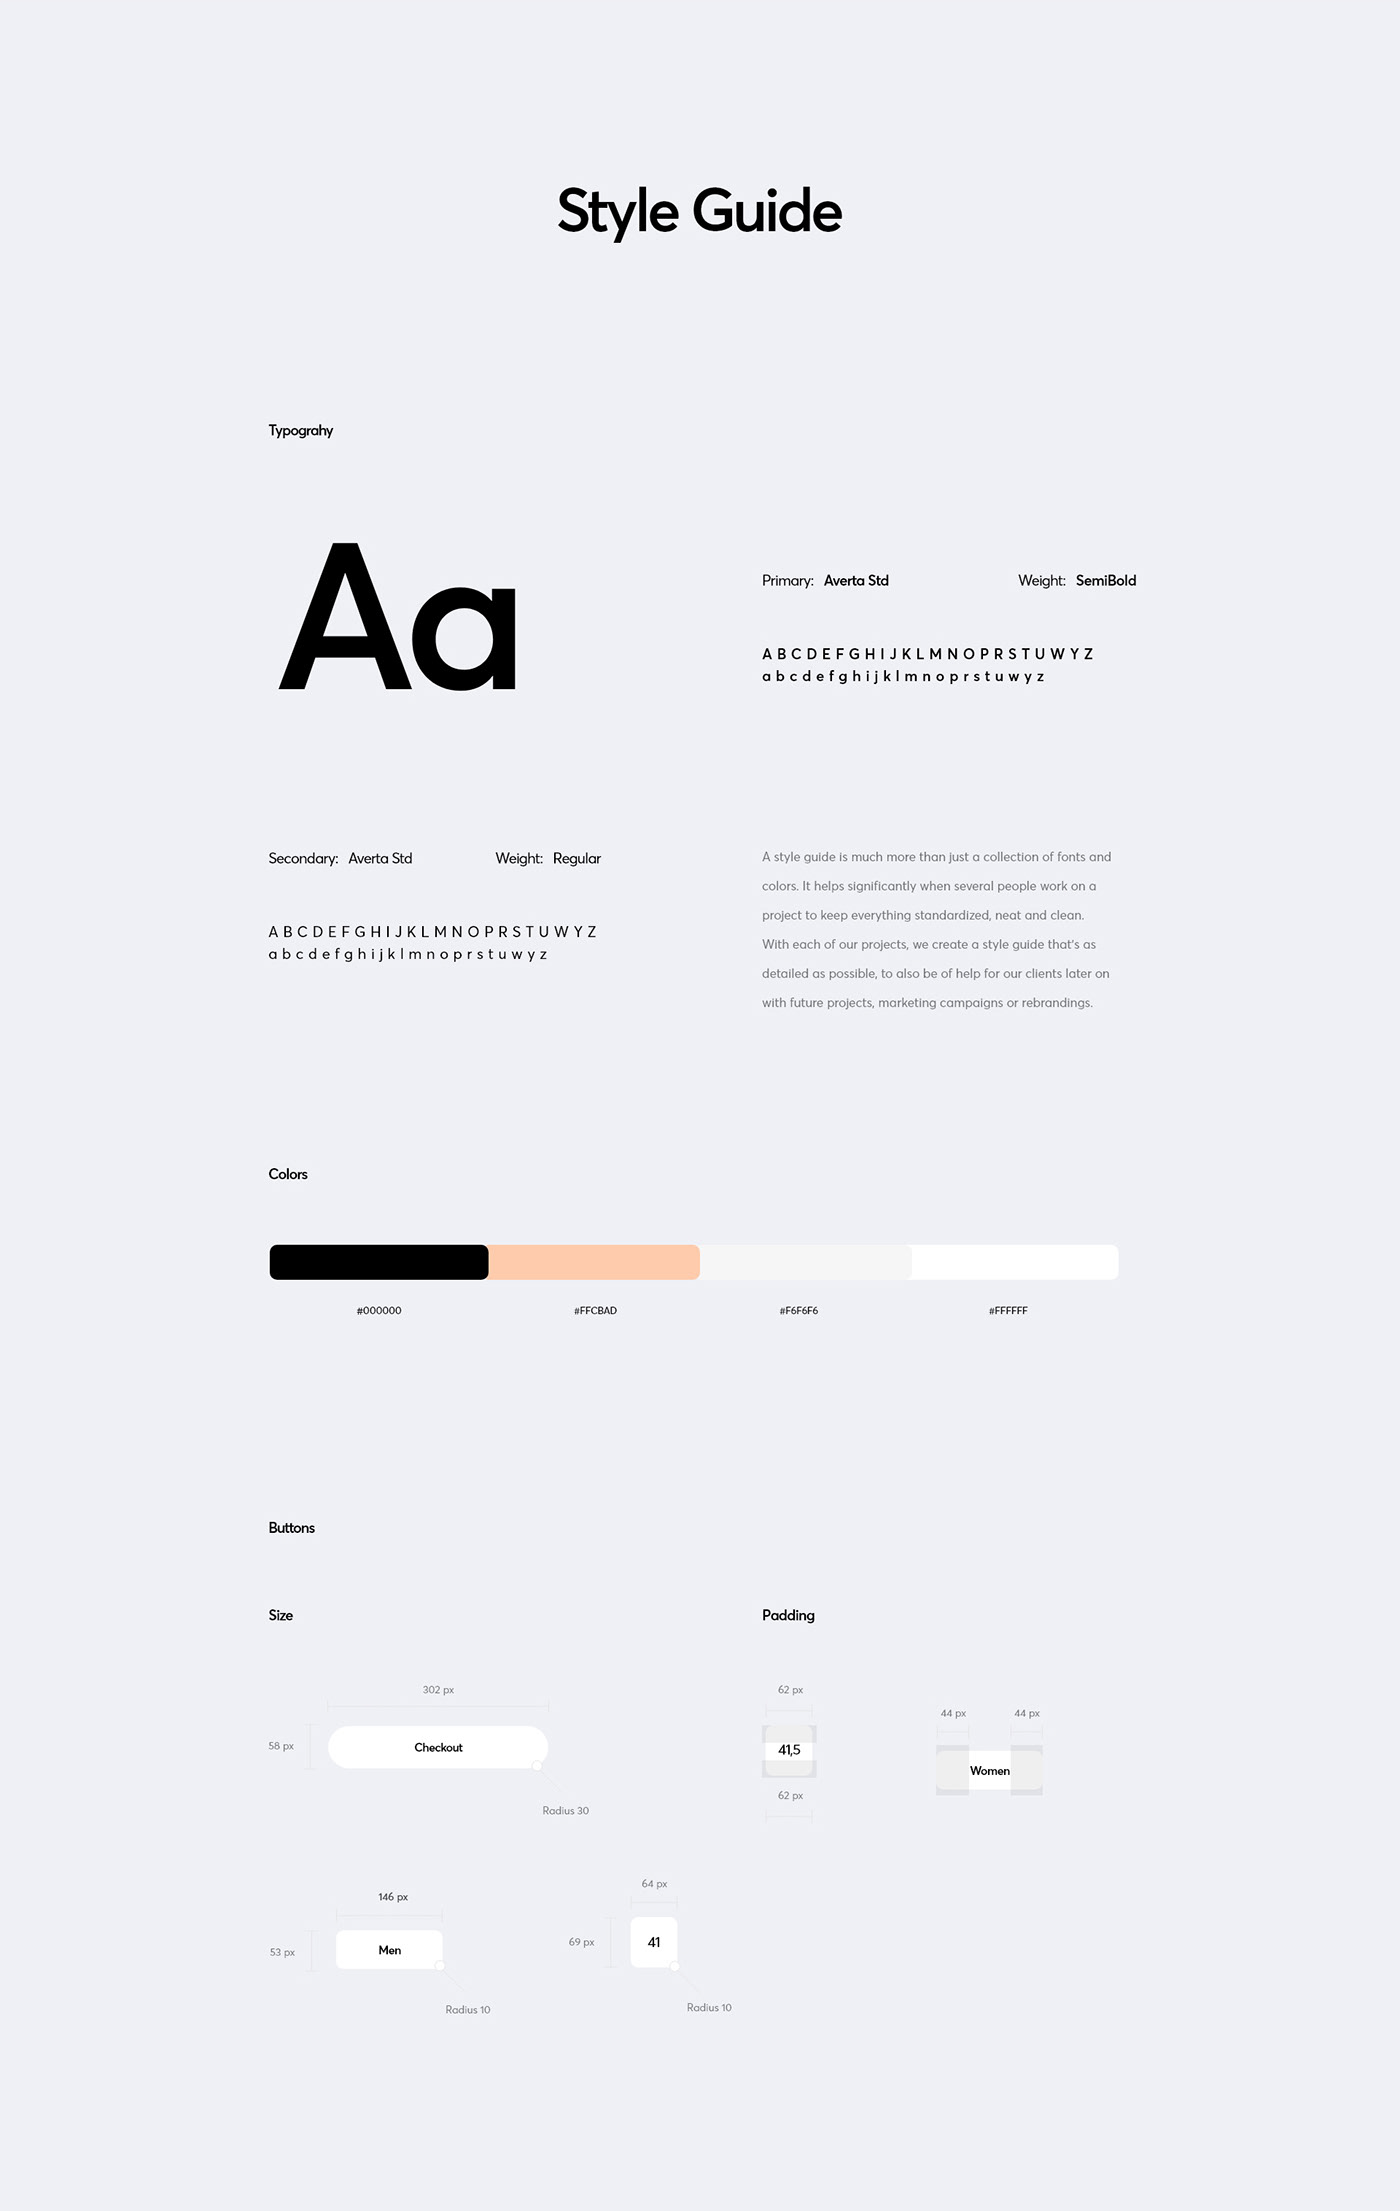 A short style guide of fonts and colors used in this project